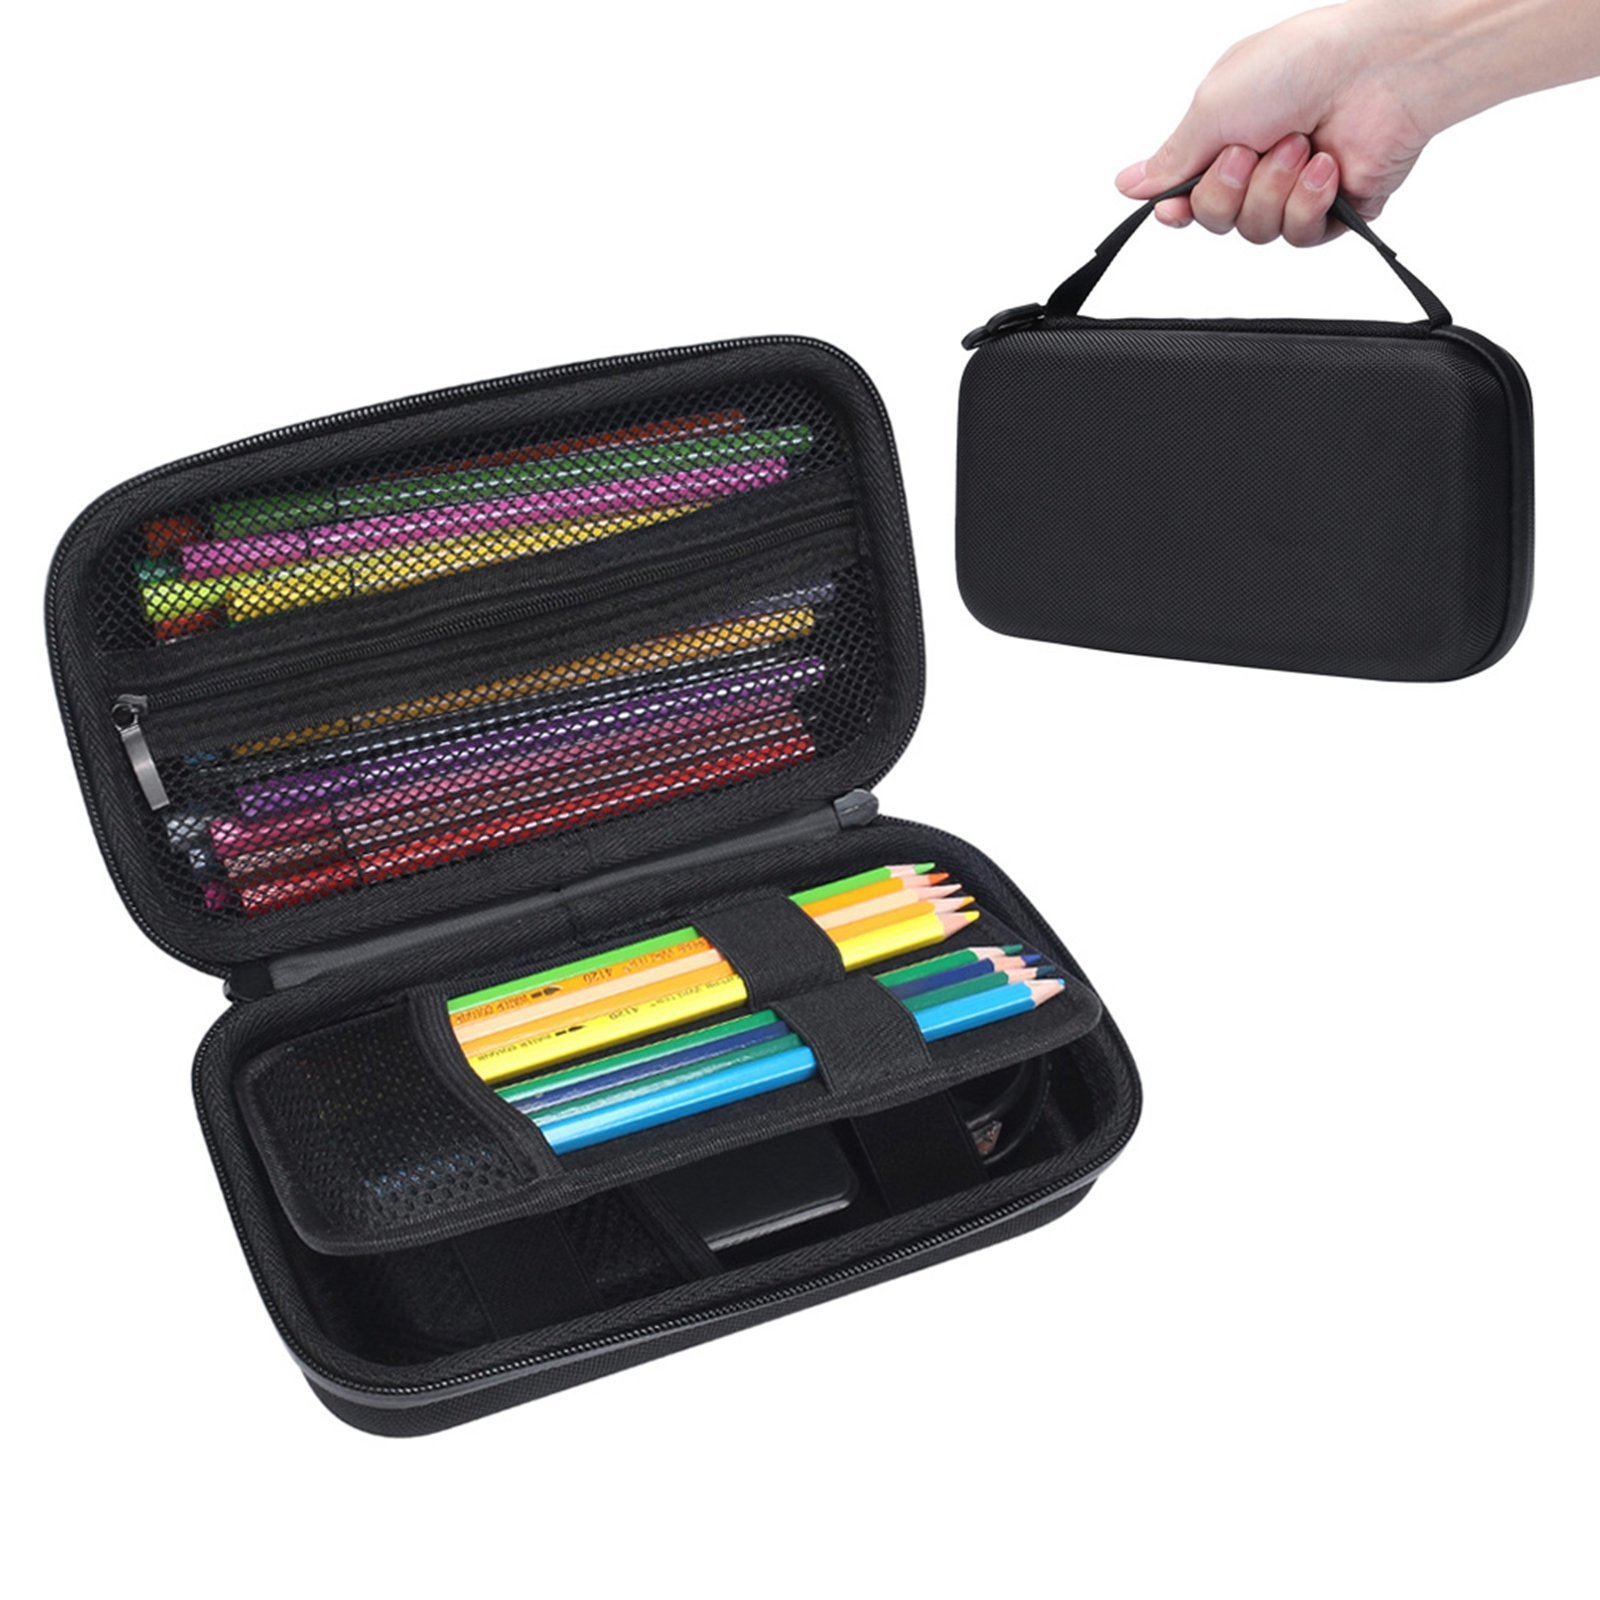 XBERSTAR Semi Hard EVA Large Pencil Case Travel Carrying Bag Protective Pouch Box Storage Colored Pencils Markers WD Hard Drive TI Graphing Calculator